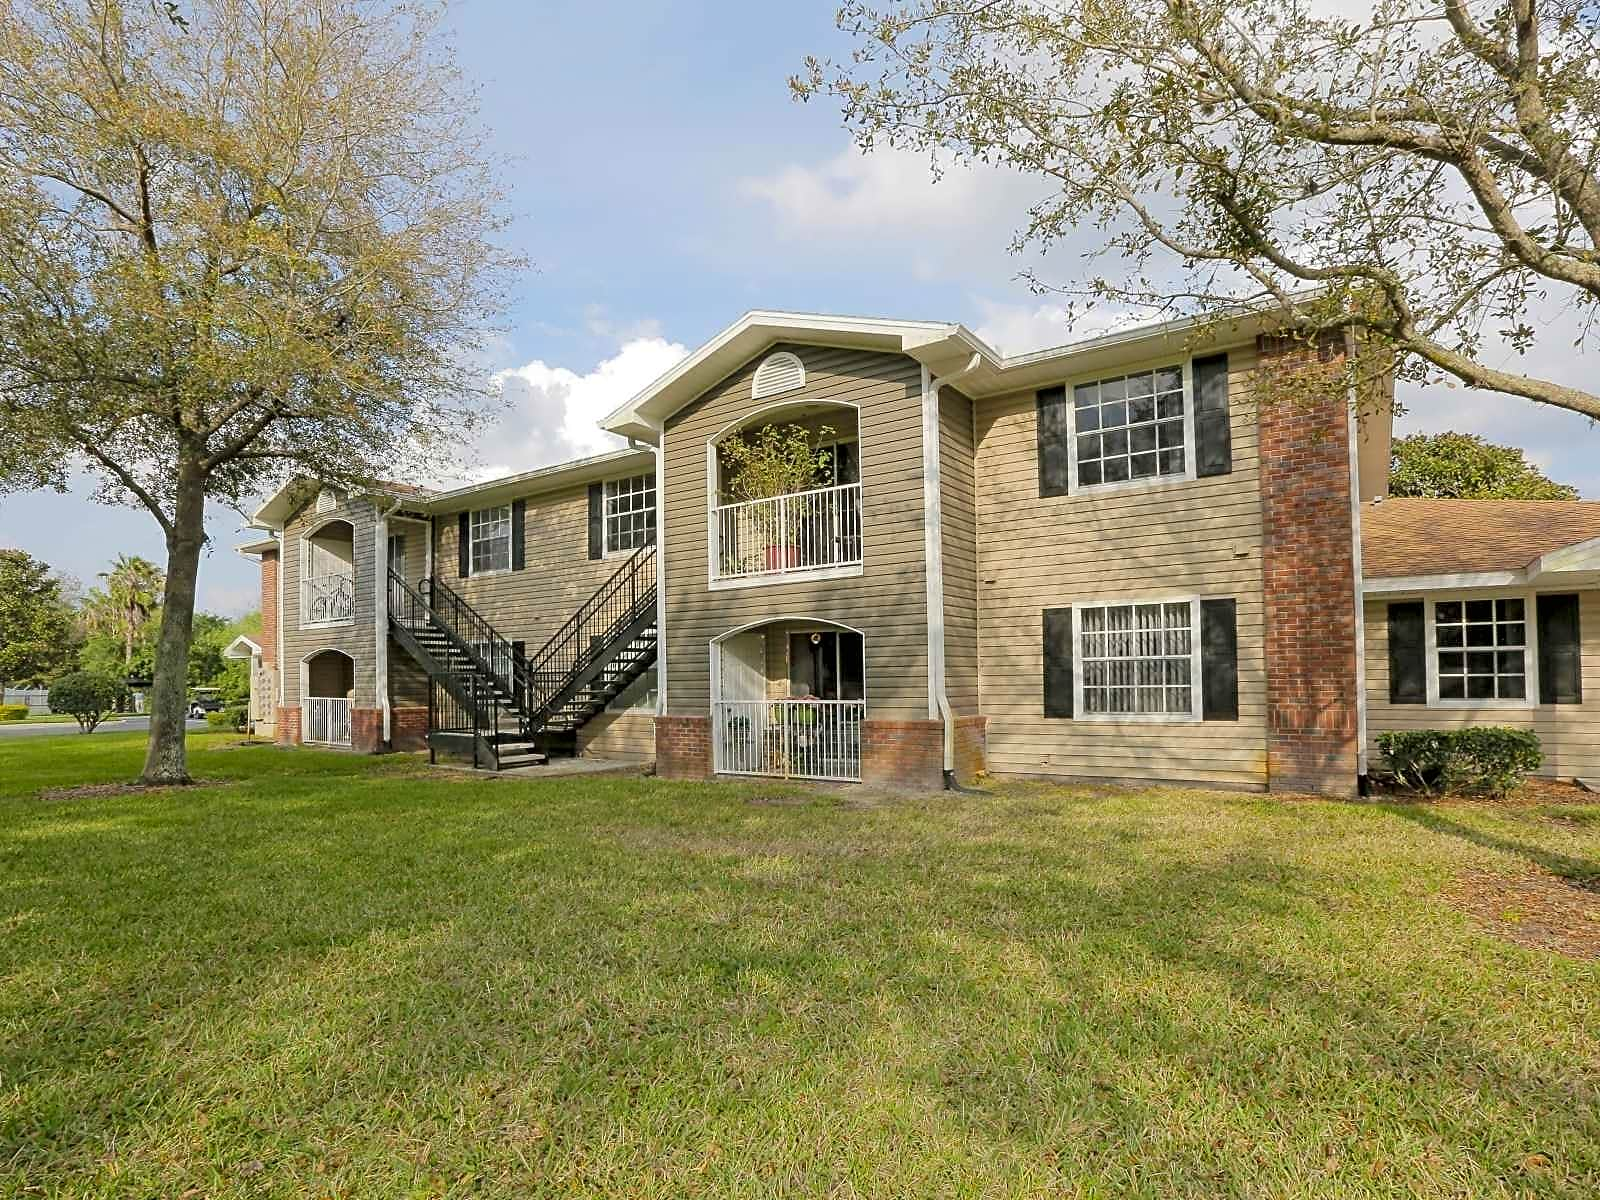 Highland City Apartments Lakeland Fl